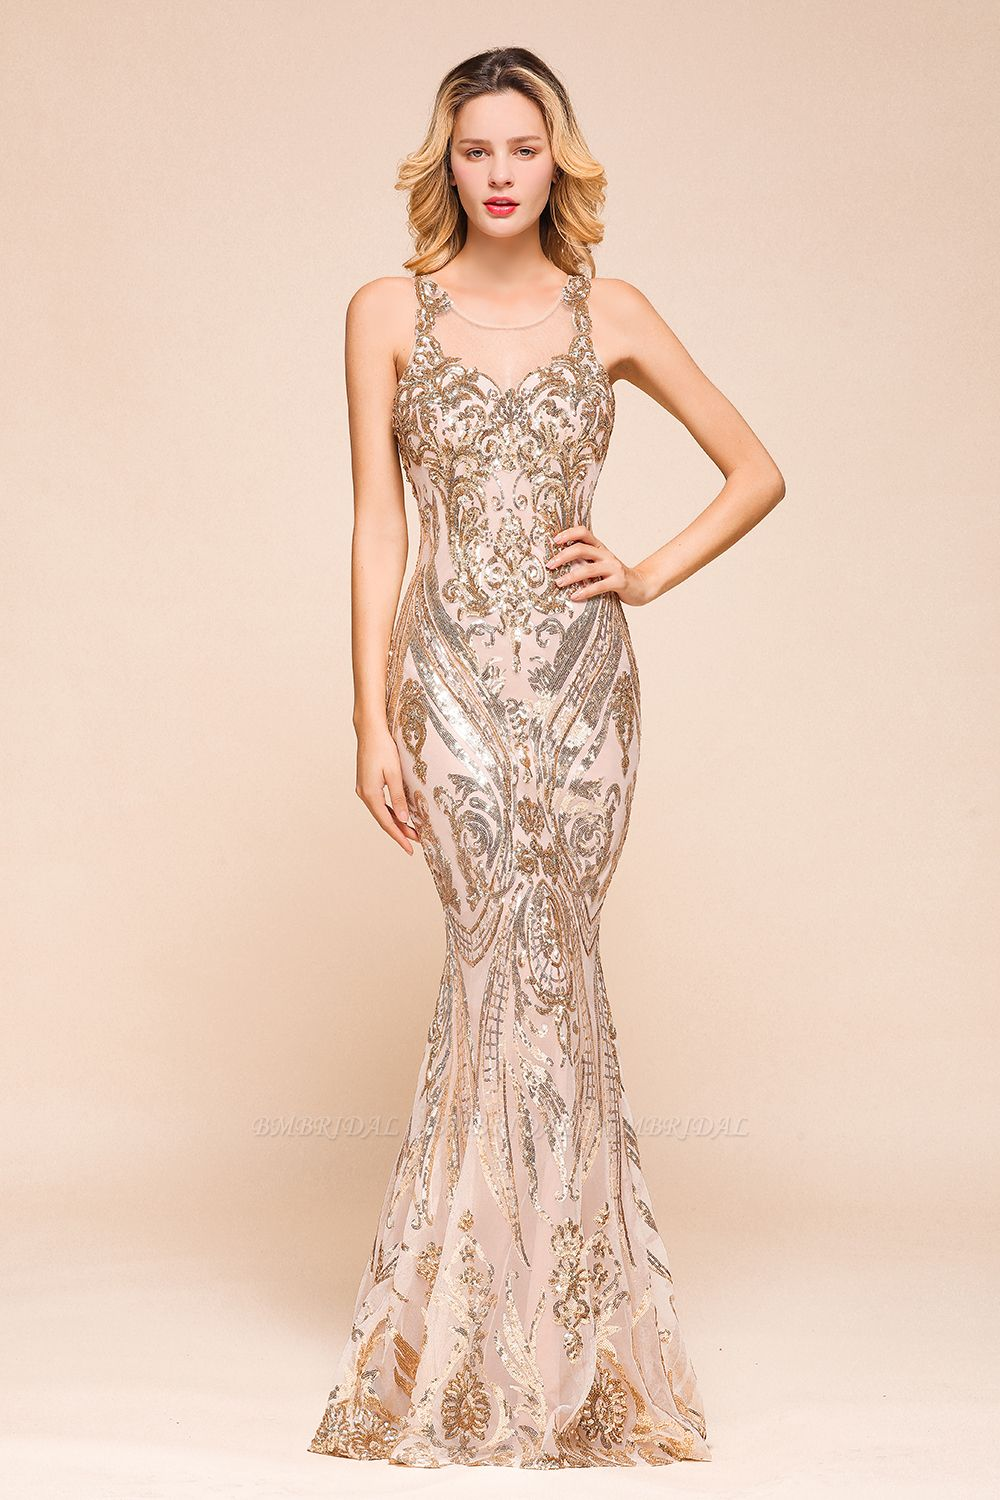 BMbridal Gorgeous Champagne Sequins Mermaid Prom Dress Long Evening Gowns Online